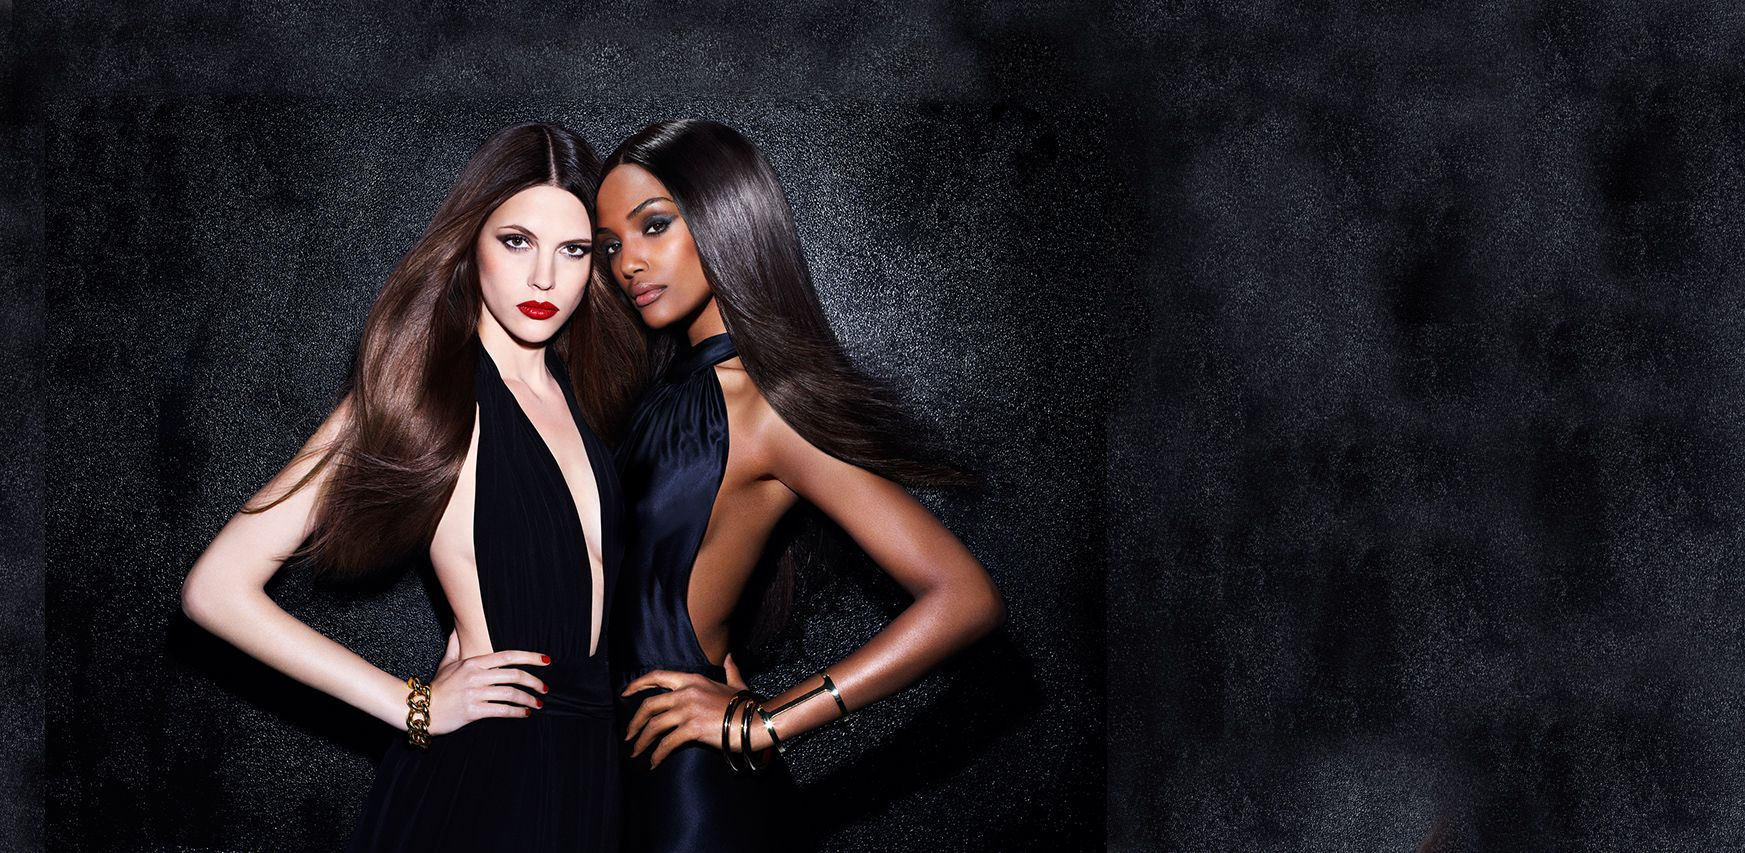 Dual Stylers model images with sleek hair